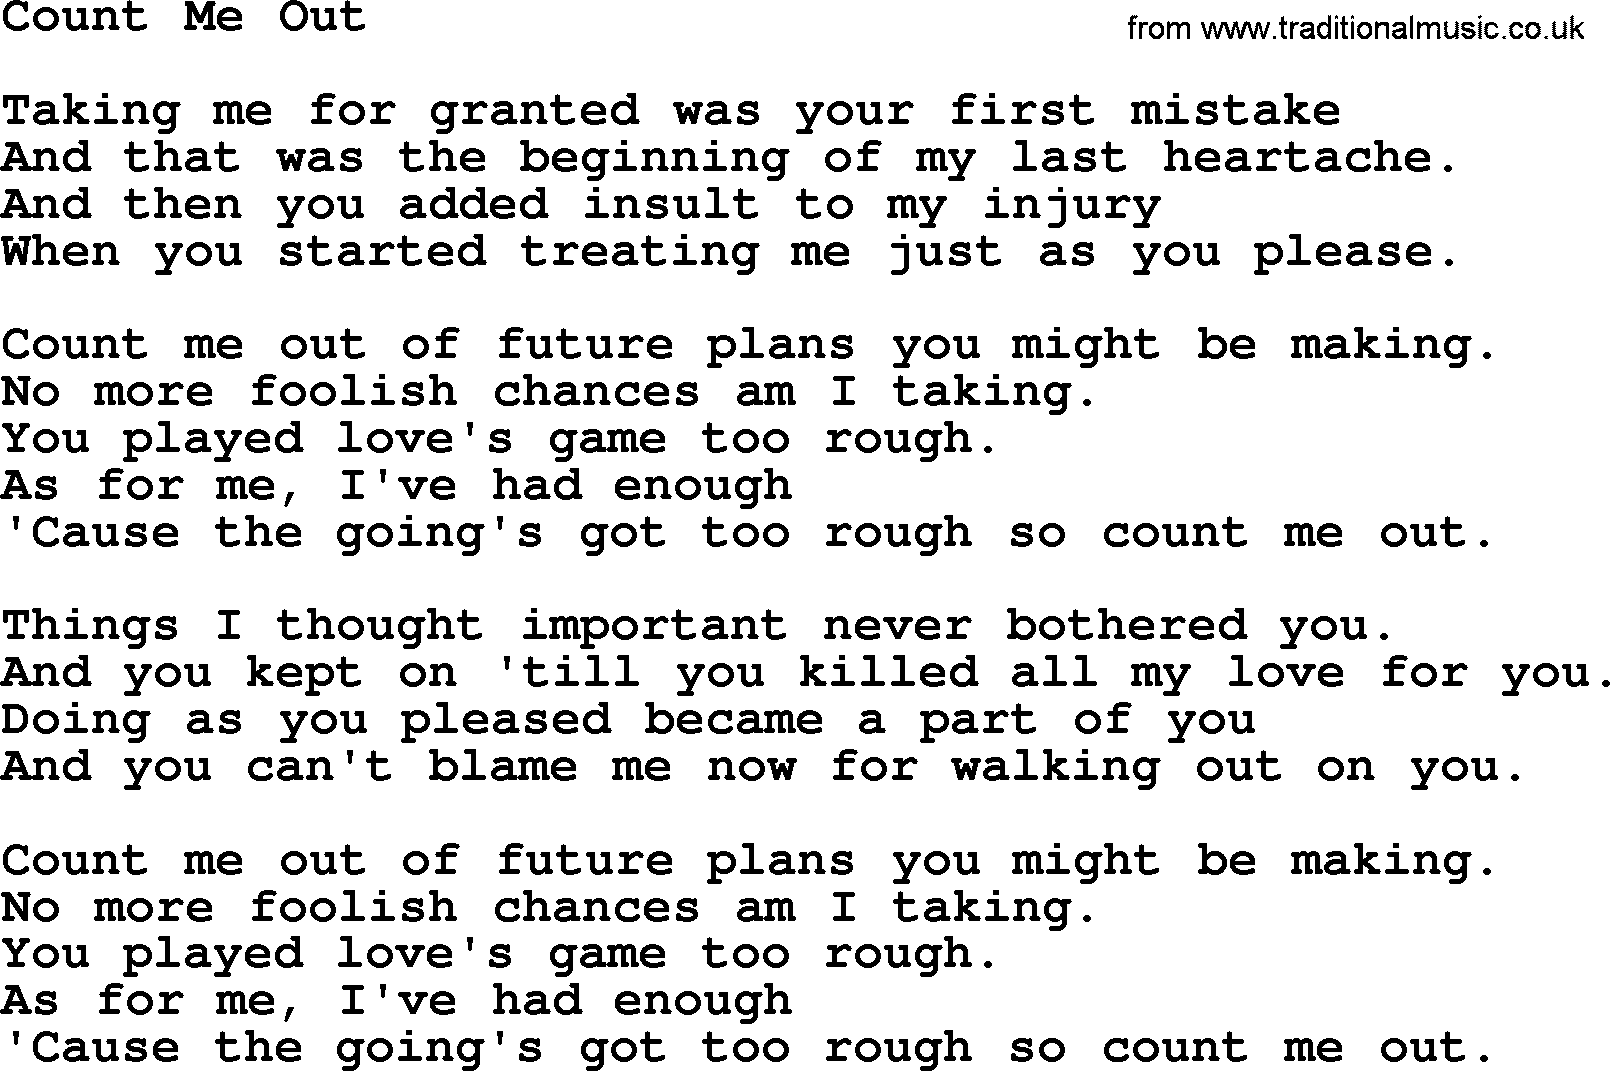 Count Me Out By Marty Robbins Lyrics